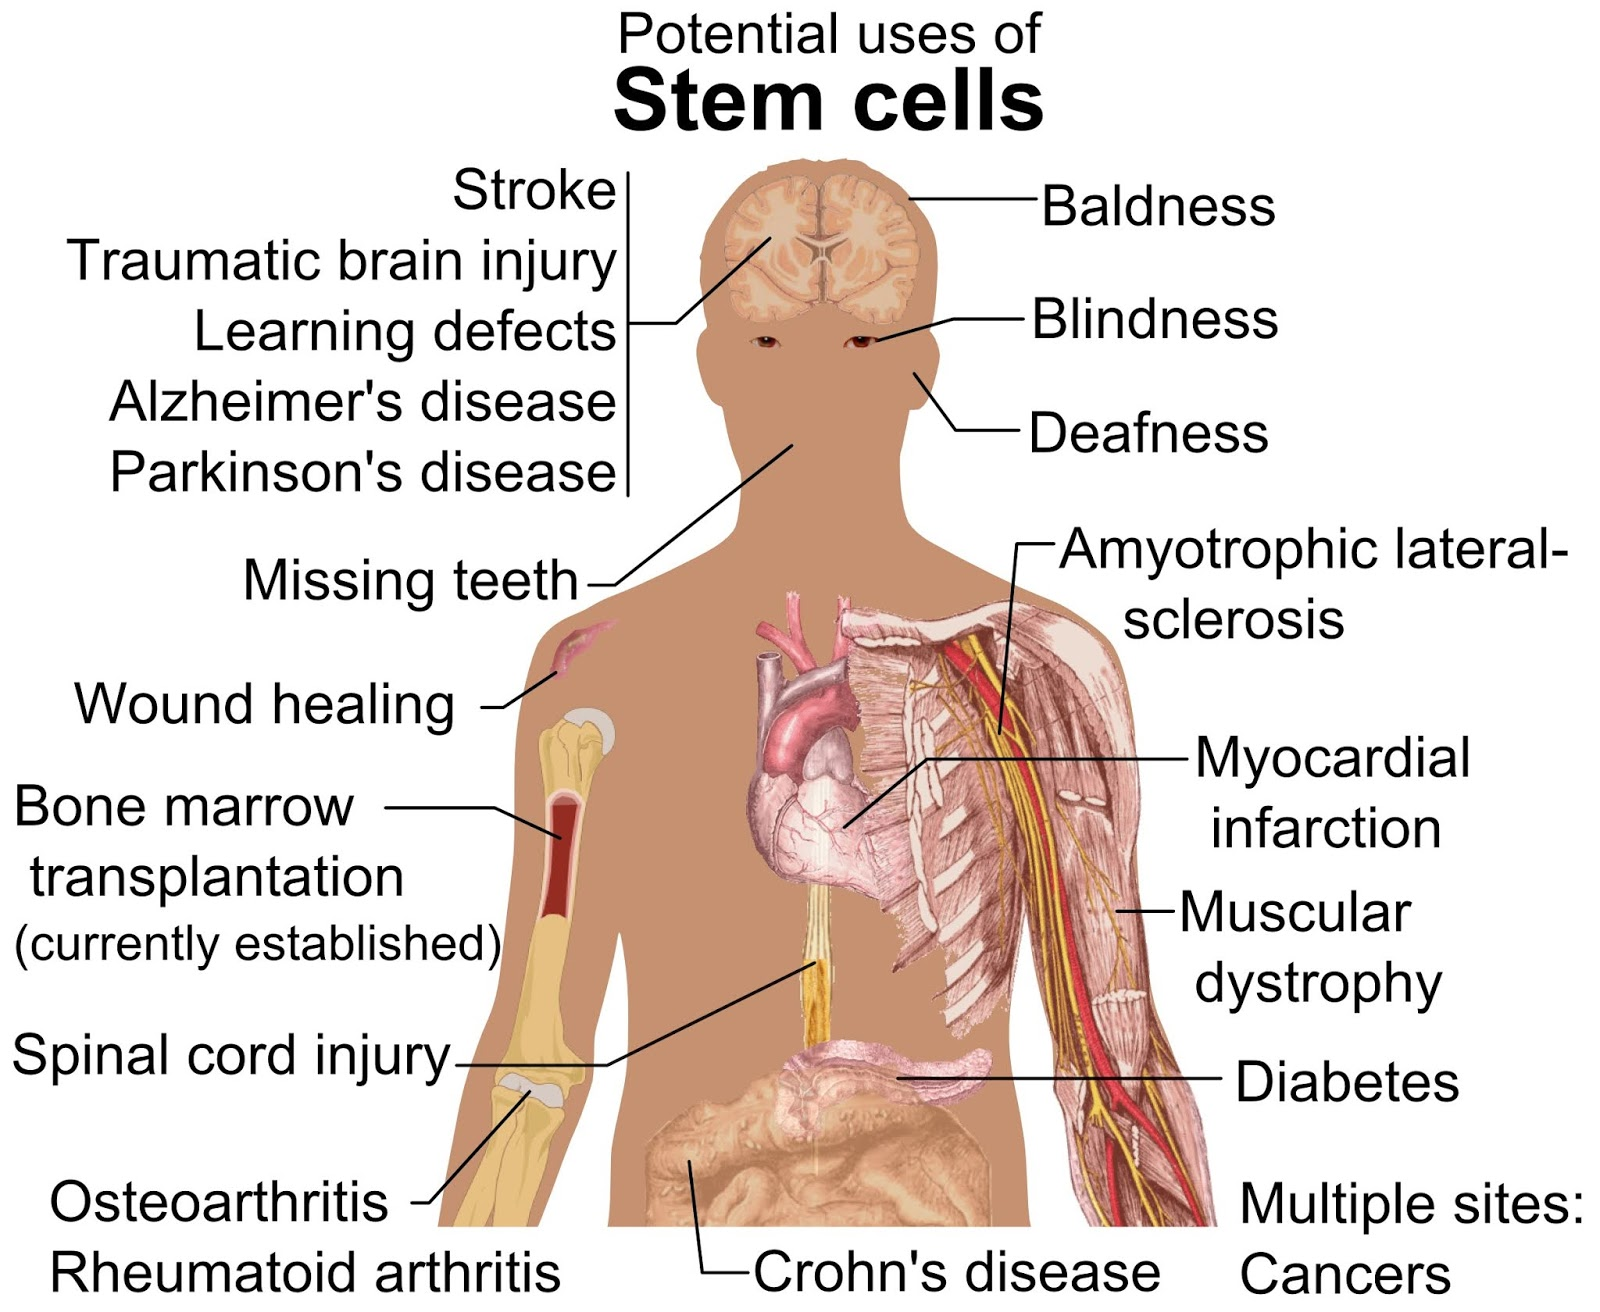 Why Stem Cell Therapy for Cerebral Palsy in India - The Edge Search